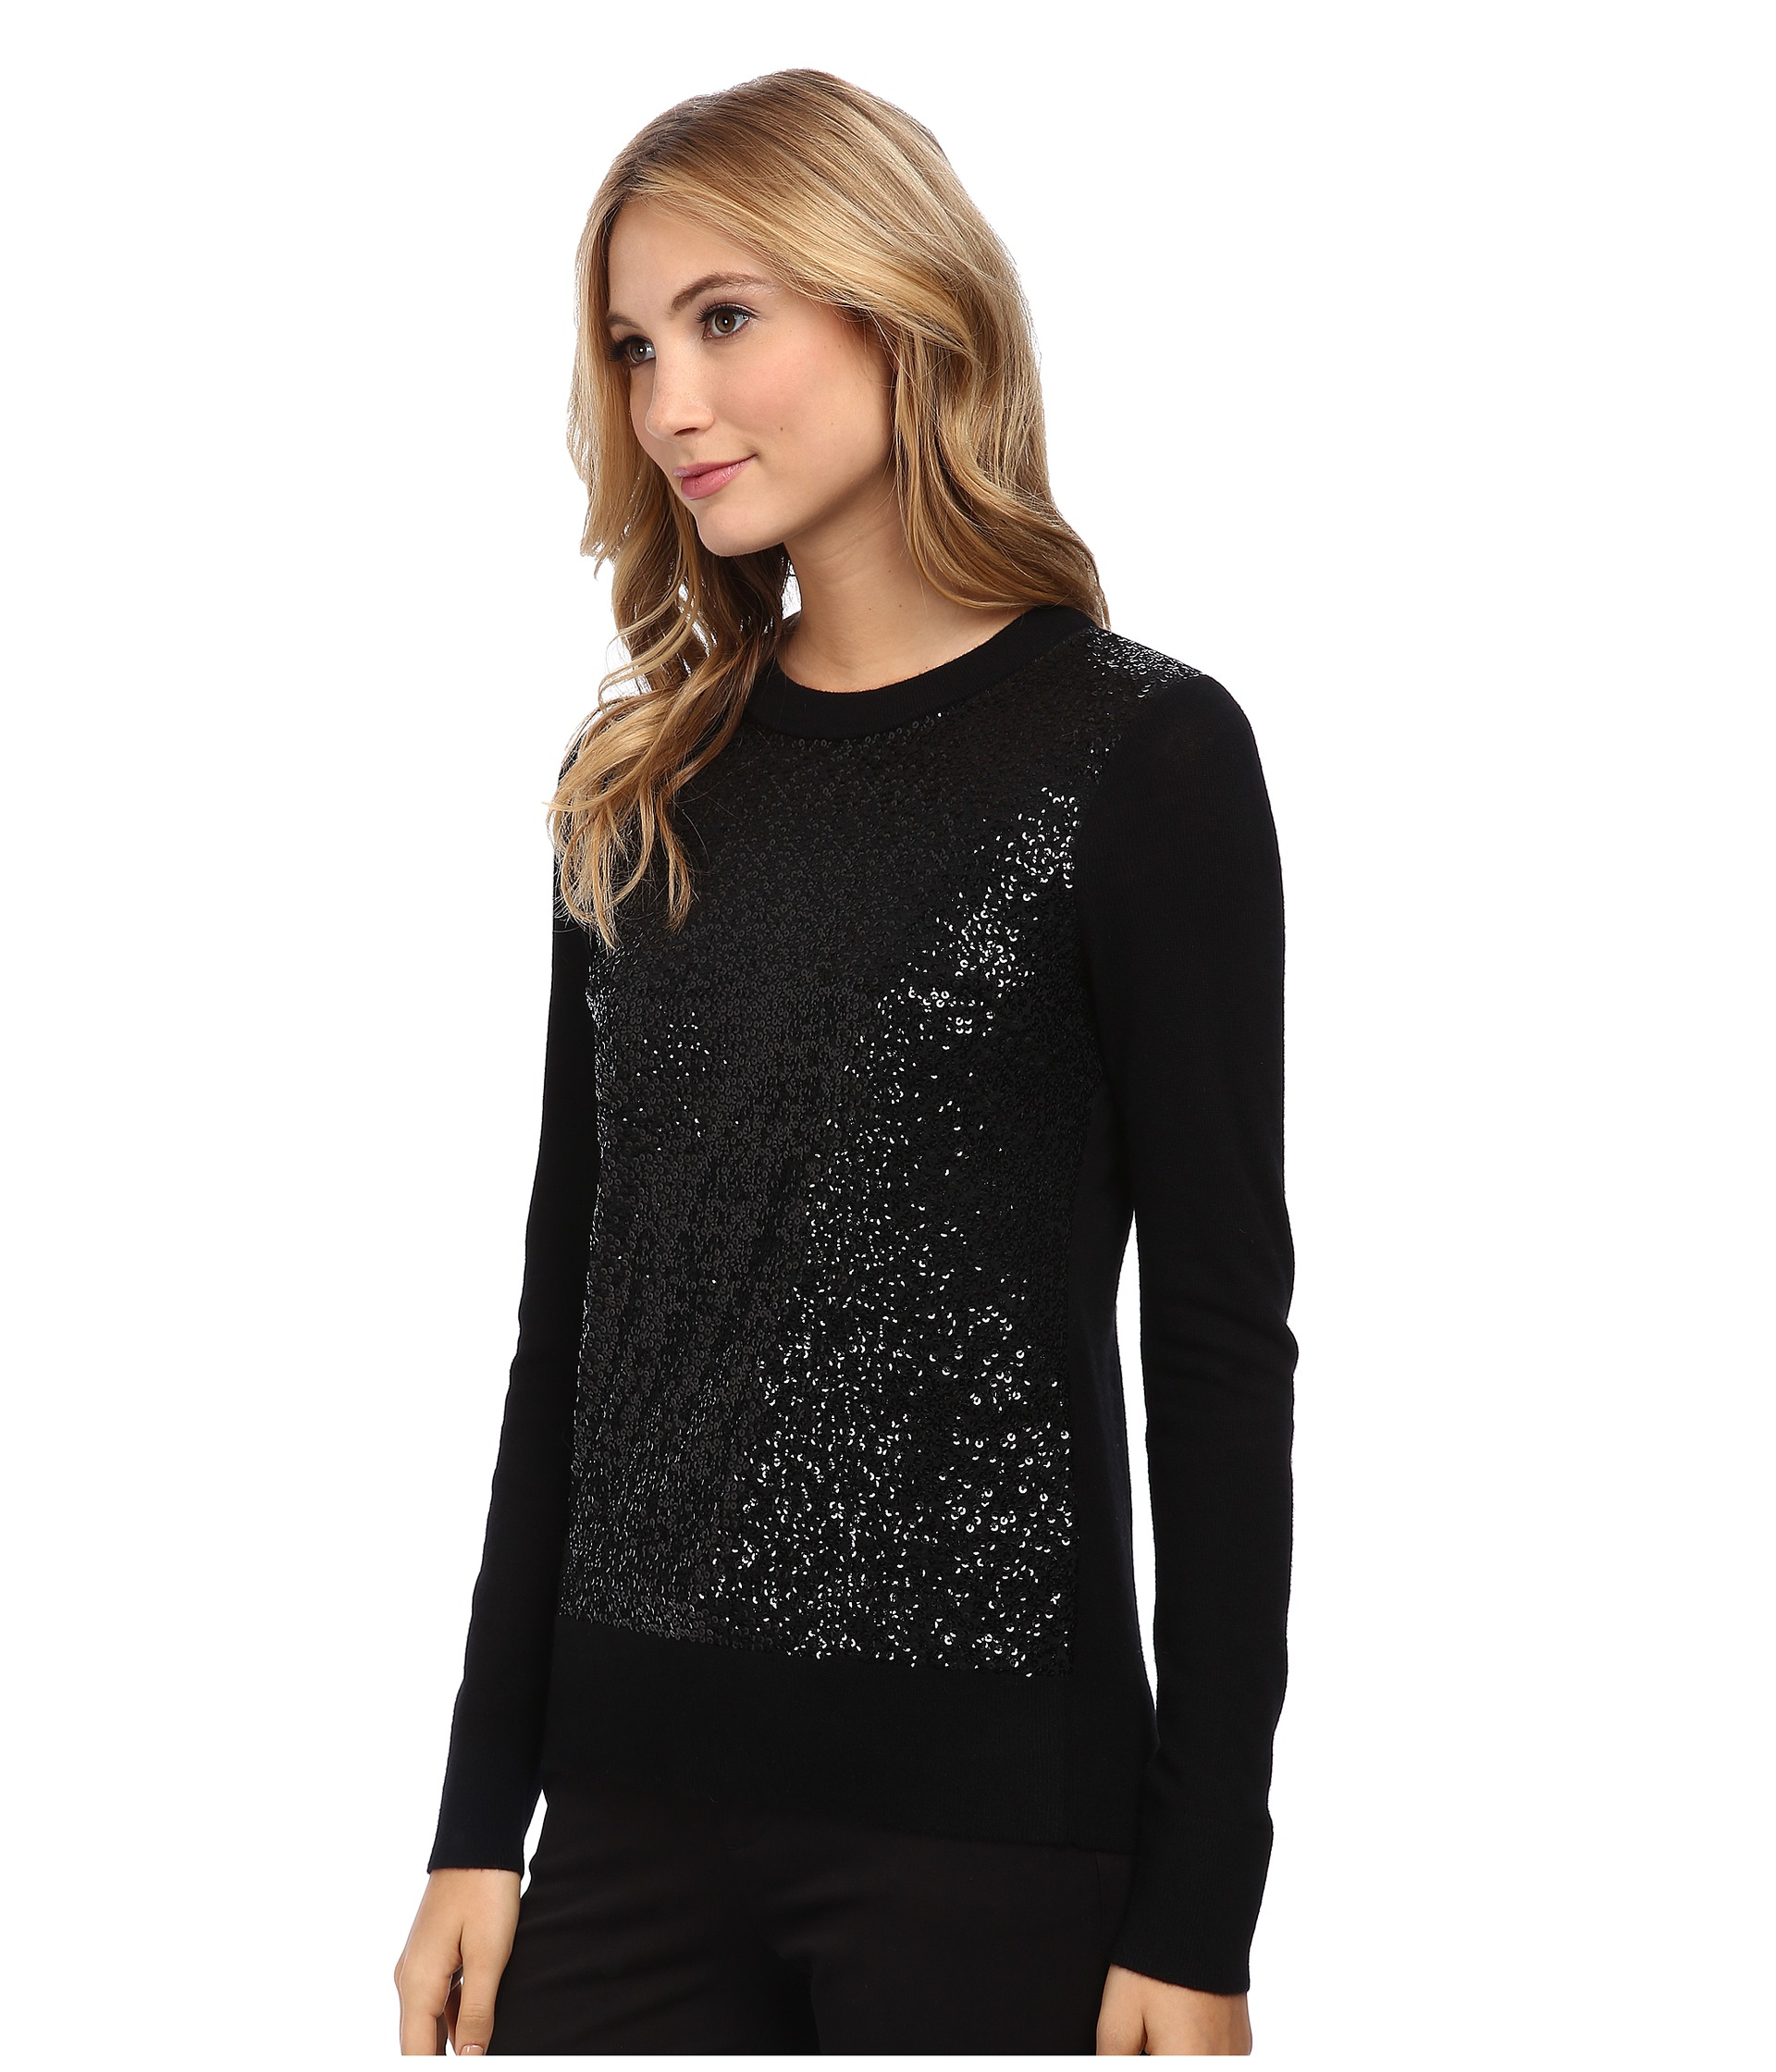 Kate spade new york Fluffy Wool Sequin Sweater in Black   Lyst